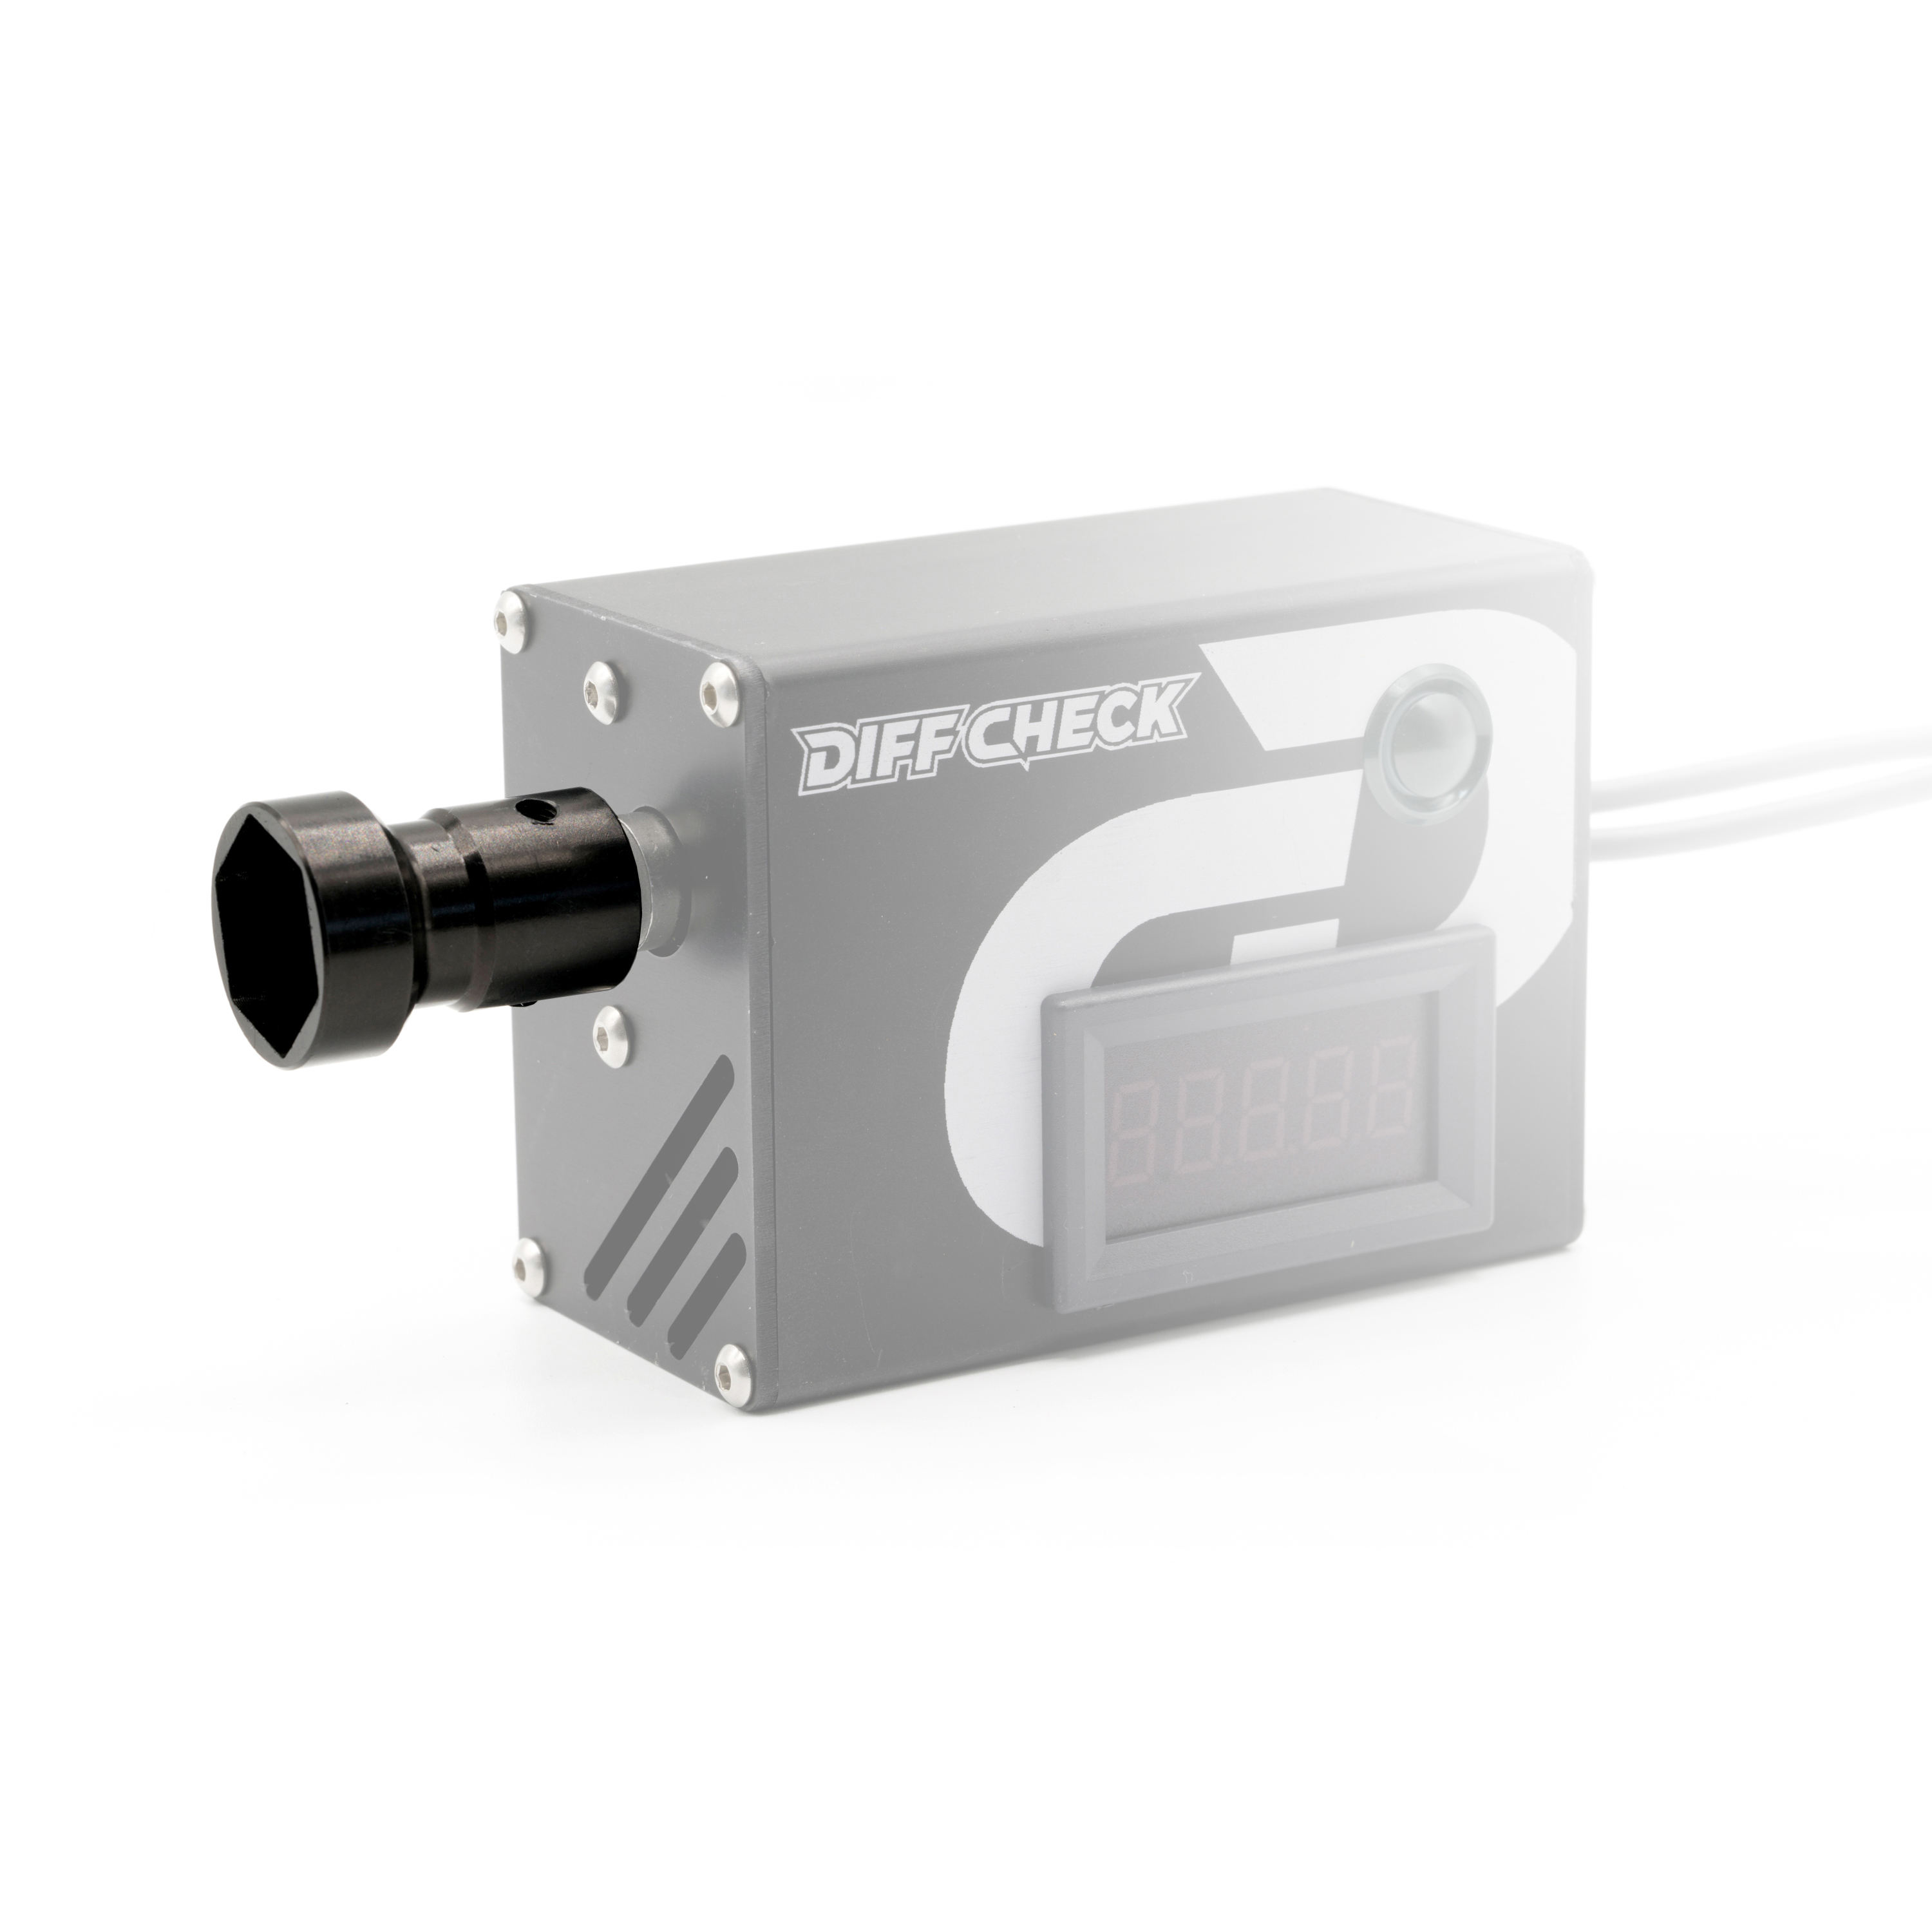 diffcheck adaptor 1/8